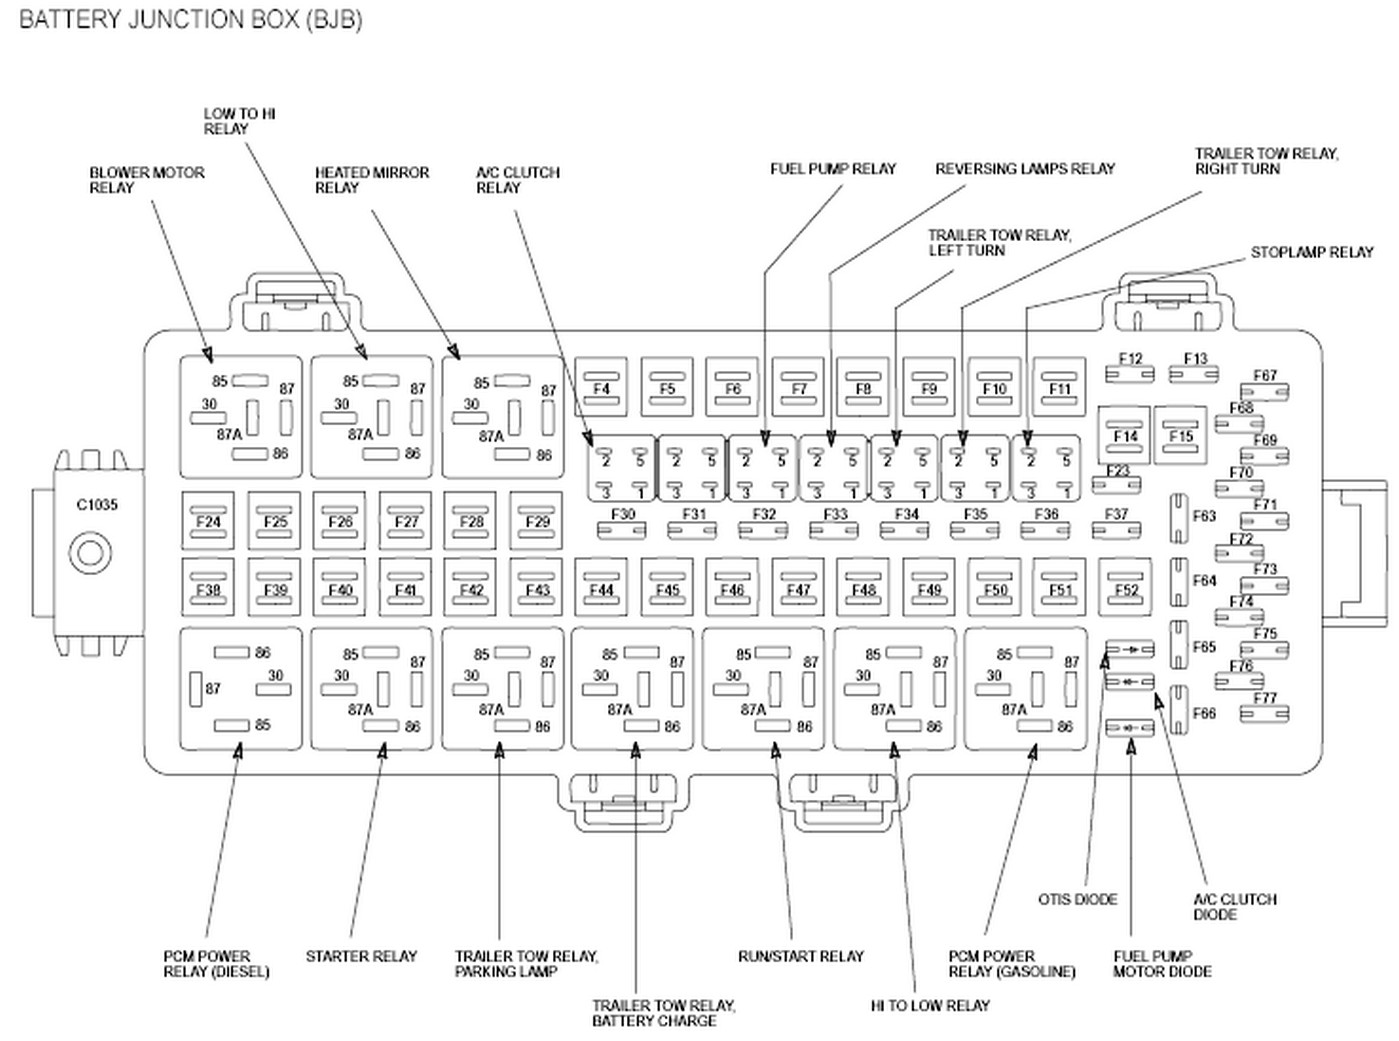 2011 ford f250 fuse box diagram Zoinyhu 2012 f250 fuse box location 2009 ford fusion fuse box diagram  at edmiracle.co